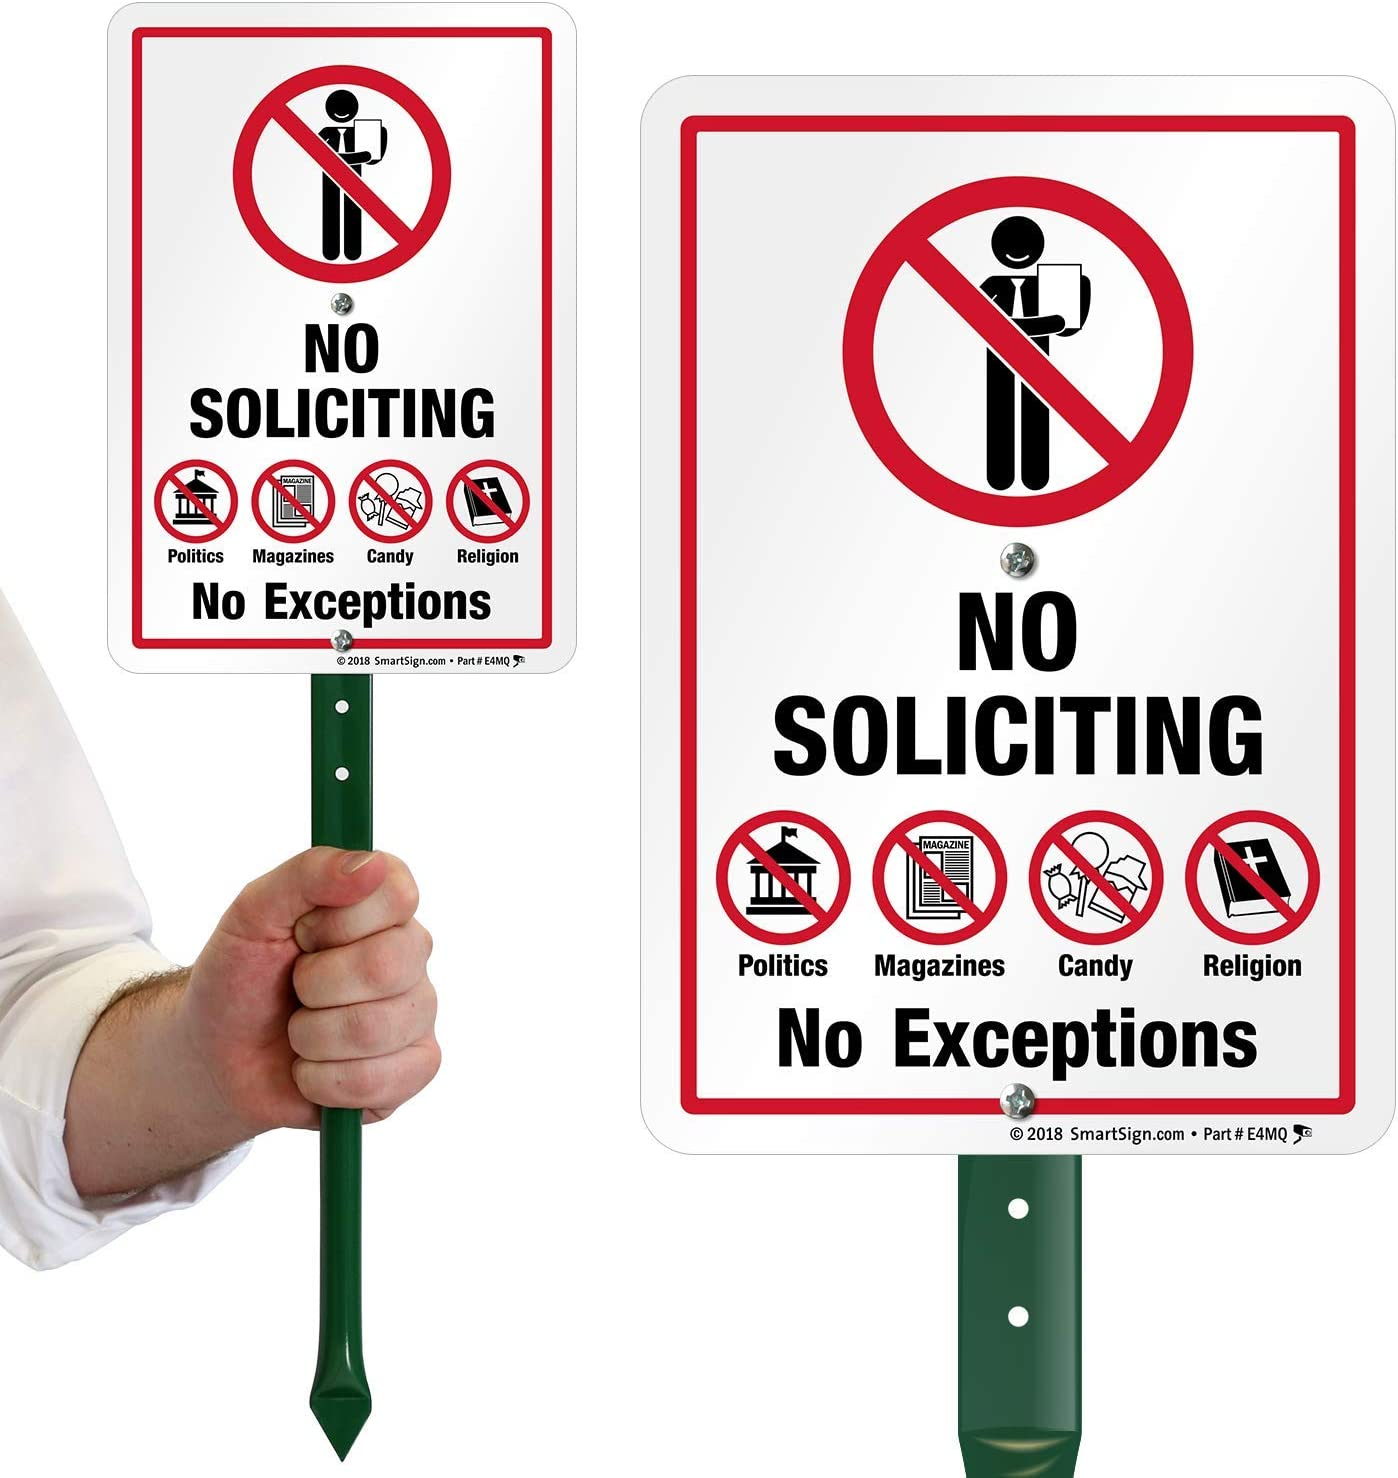 """SmartSign No Soliciting Sign for Yard, No Soliciting No Exceptions, No Politics Magazines Candy Religion Sign for Lawn, 10x7 Inches  21"""" Tall Stake & Sign Kit, Easy Installation"""